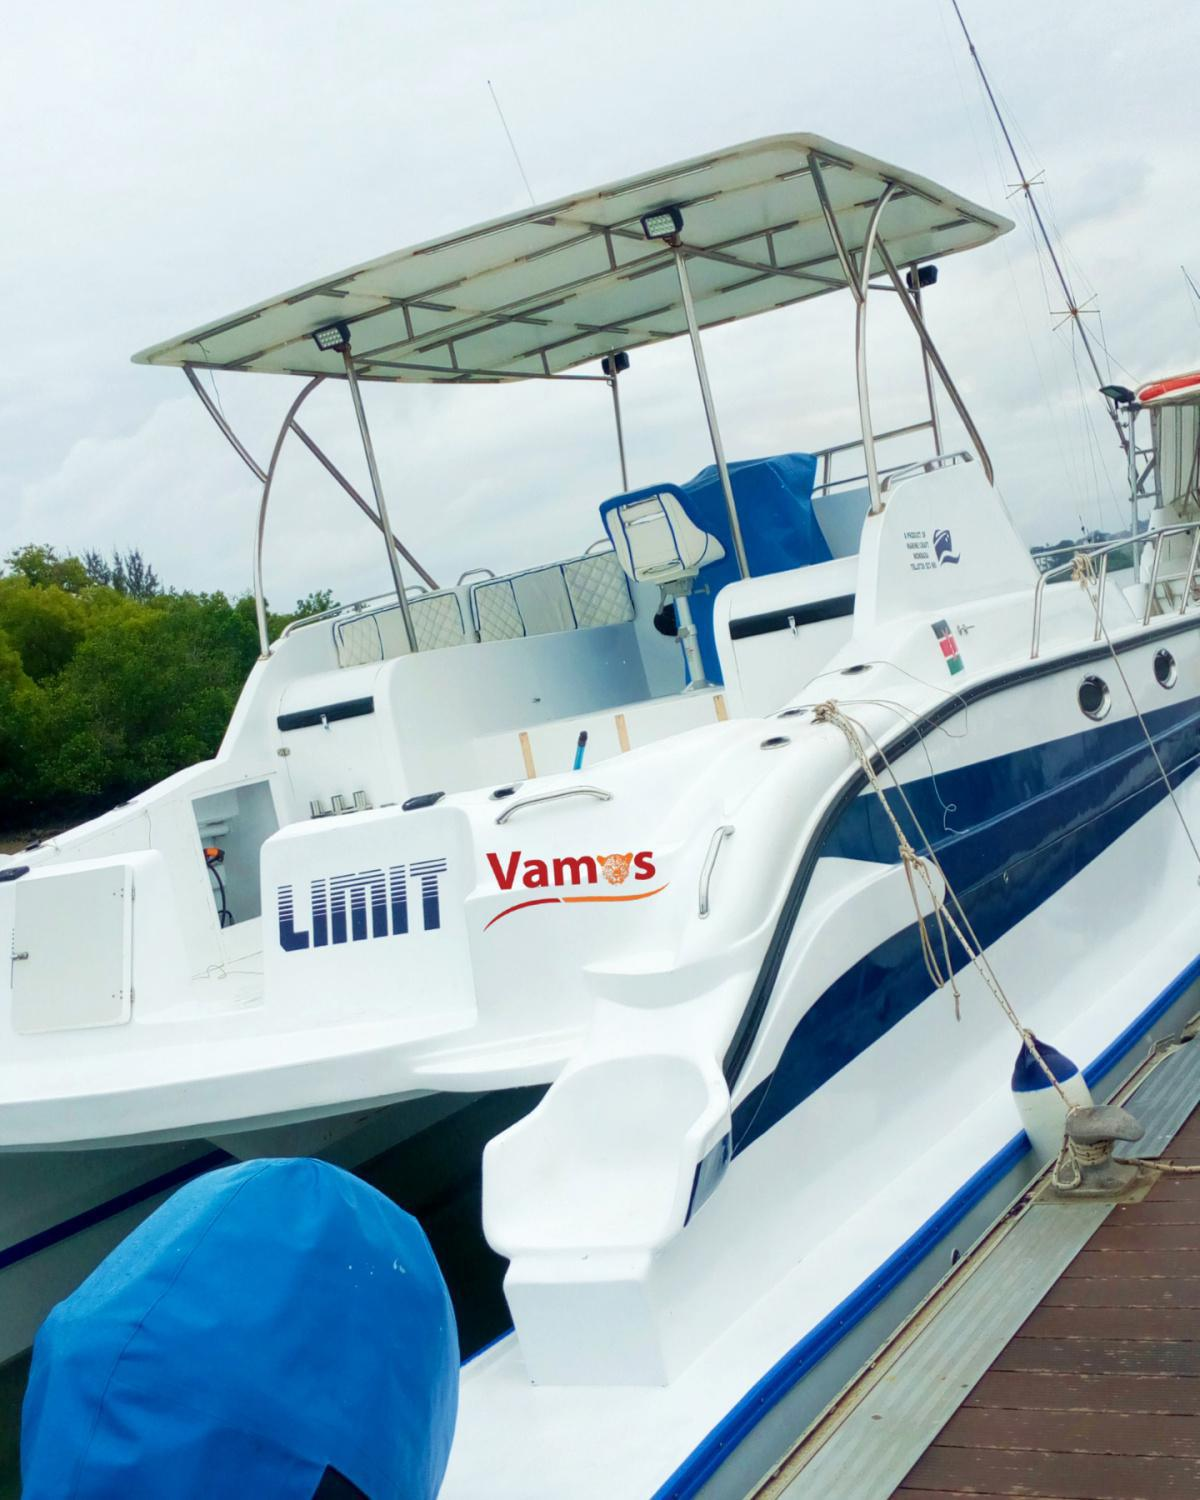 NEW YACHT!! NEW ROUTE!! from only 1750 per person - Tudor Marina